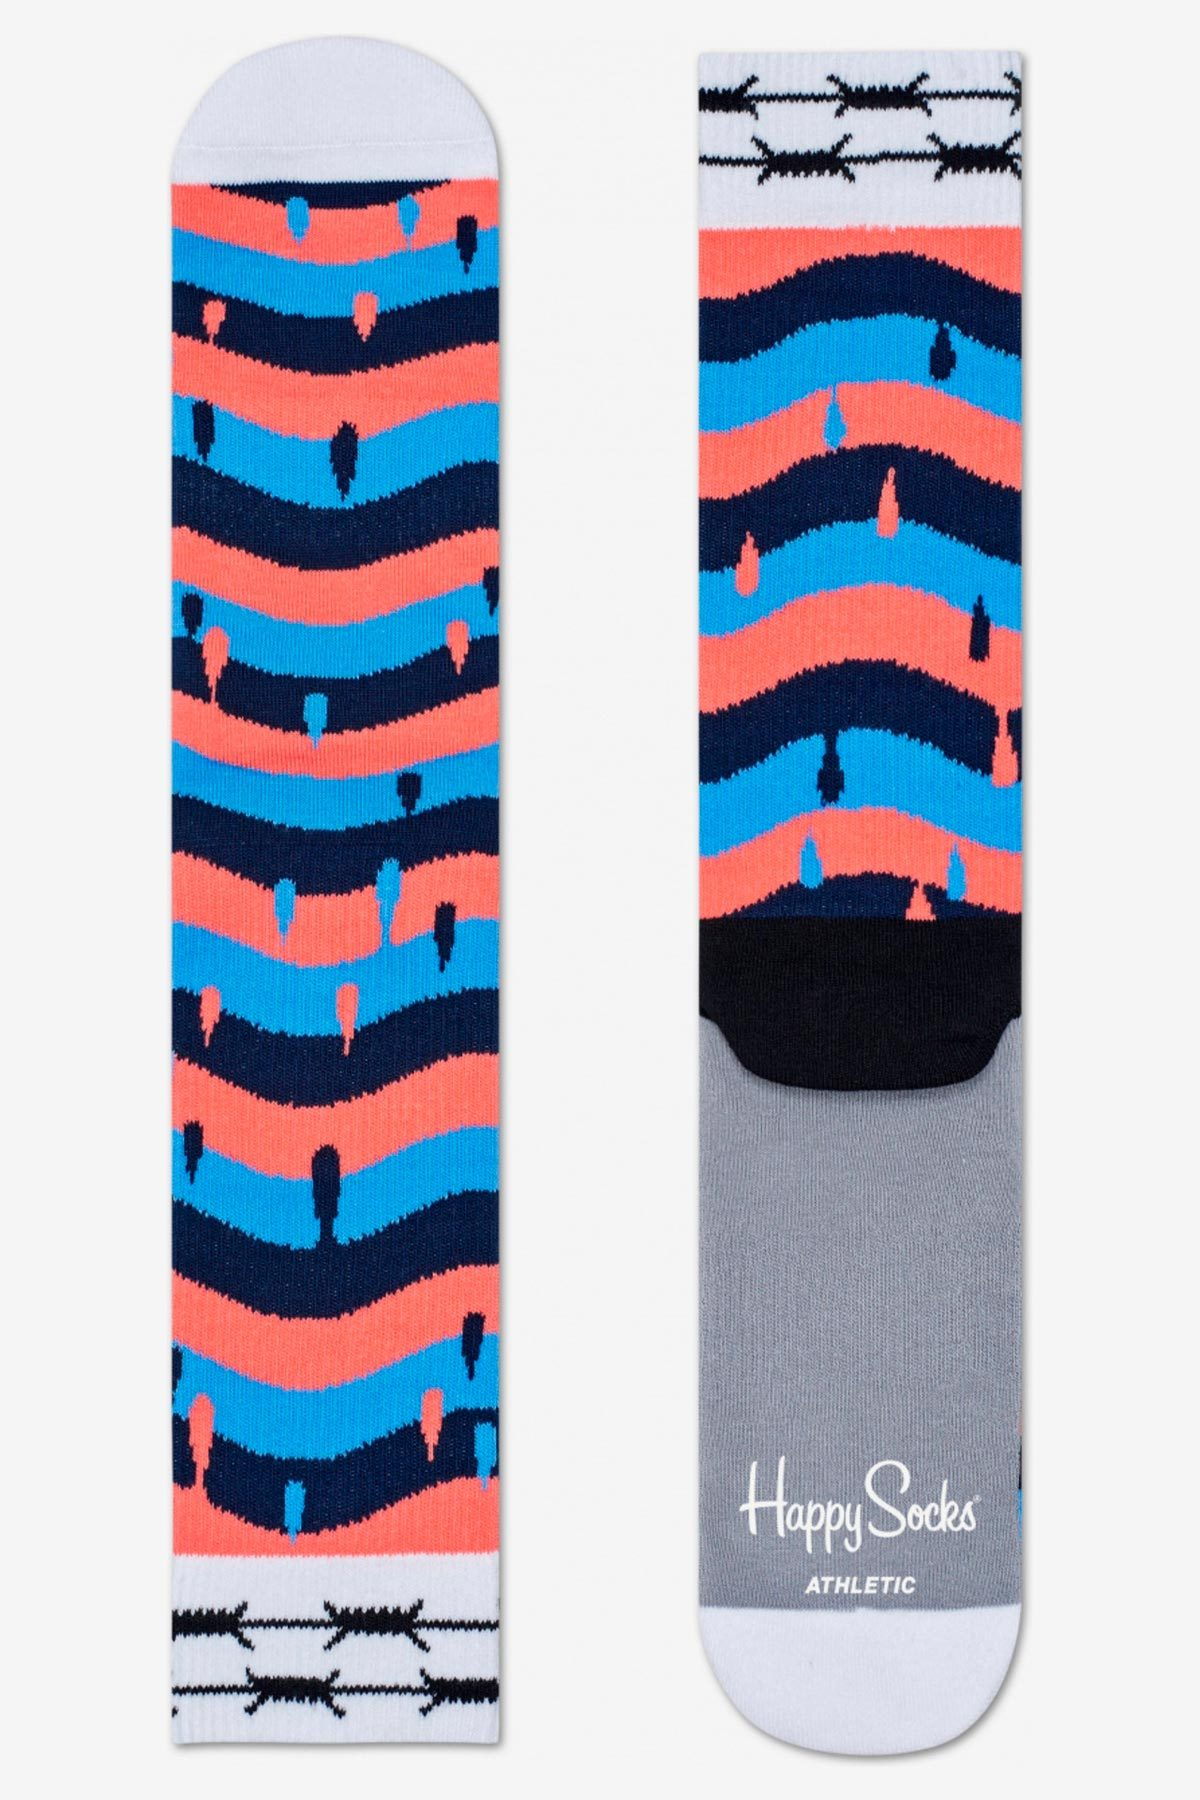 Happy Socks X Montana Cans Limited edition